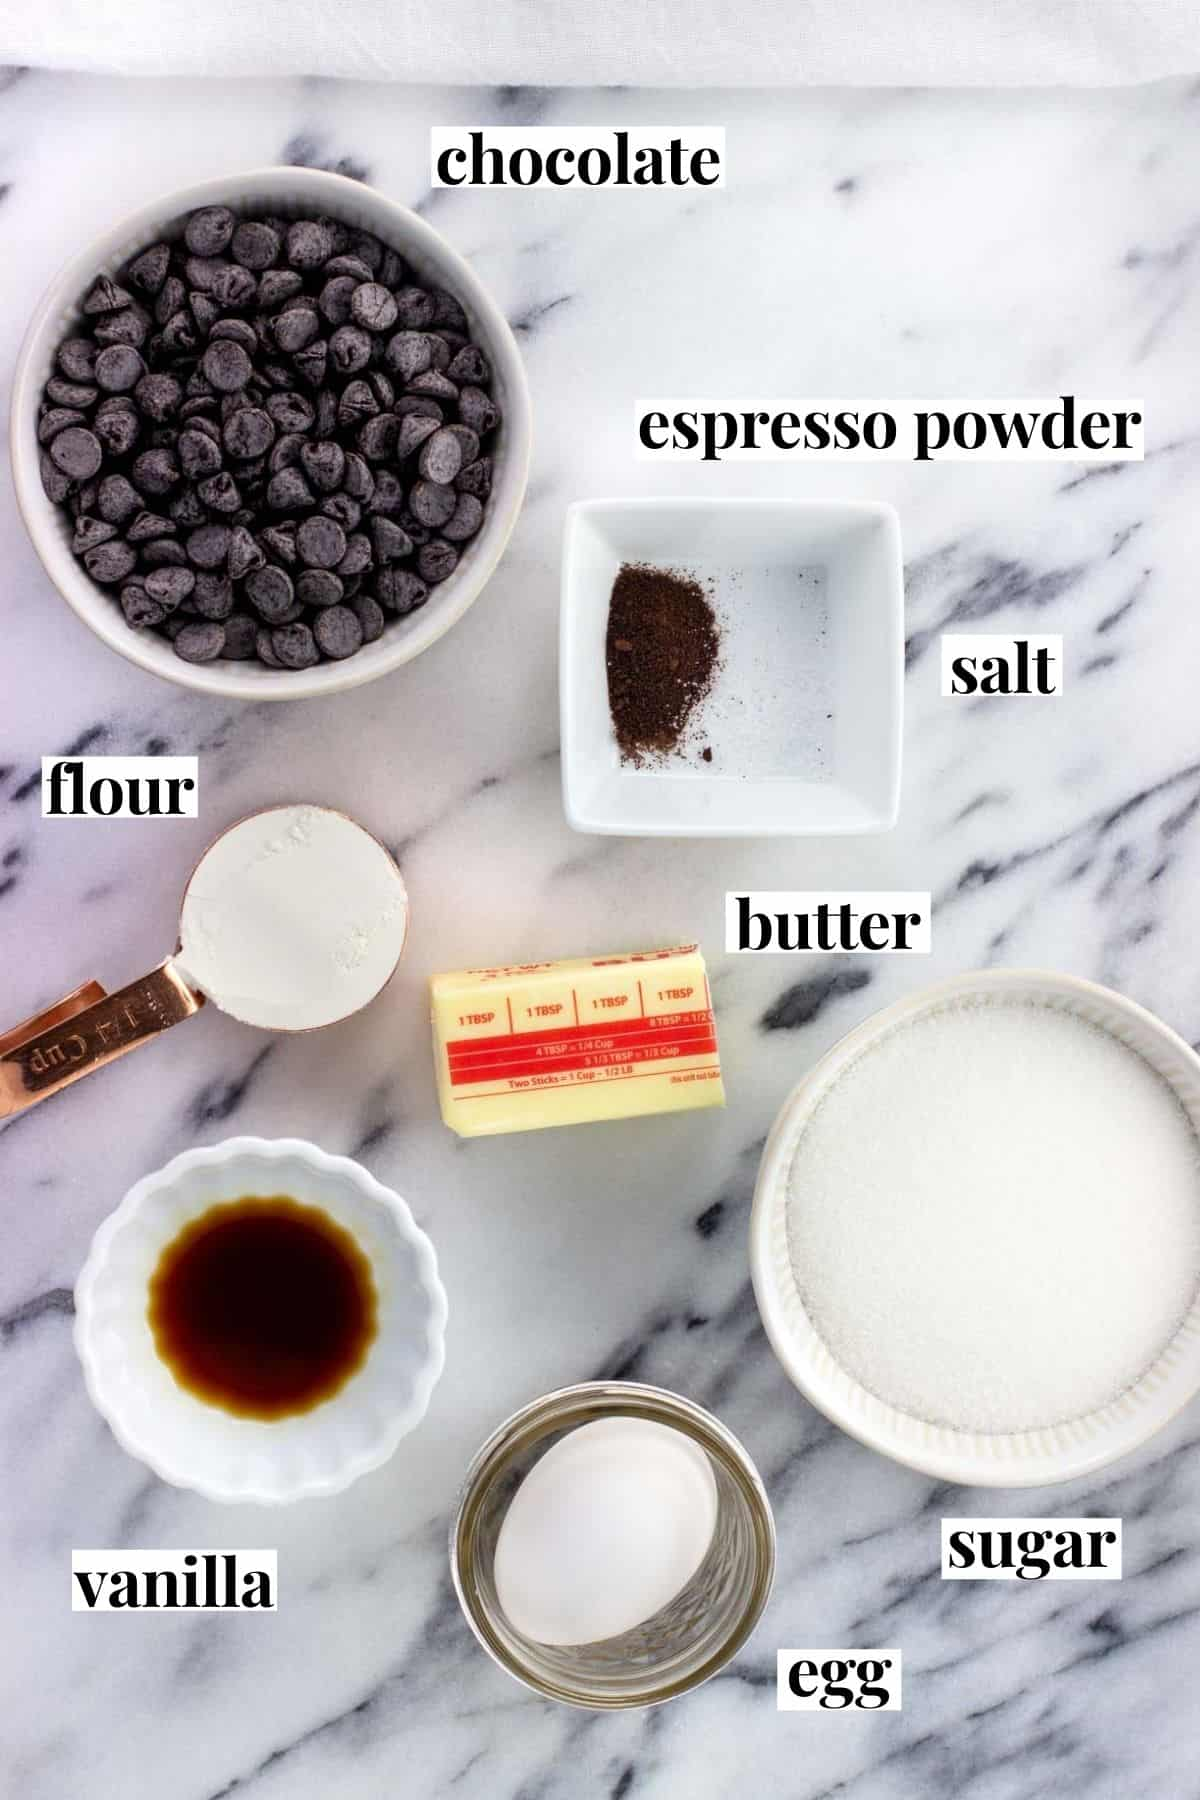 Labeled brownie recipe ingredients on a marble board.